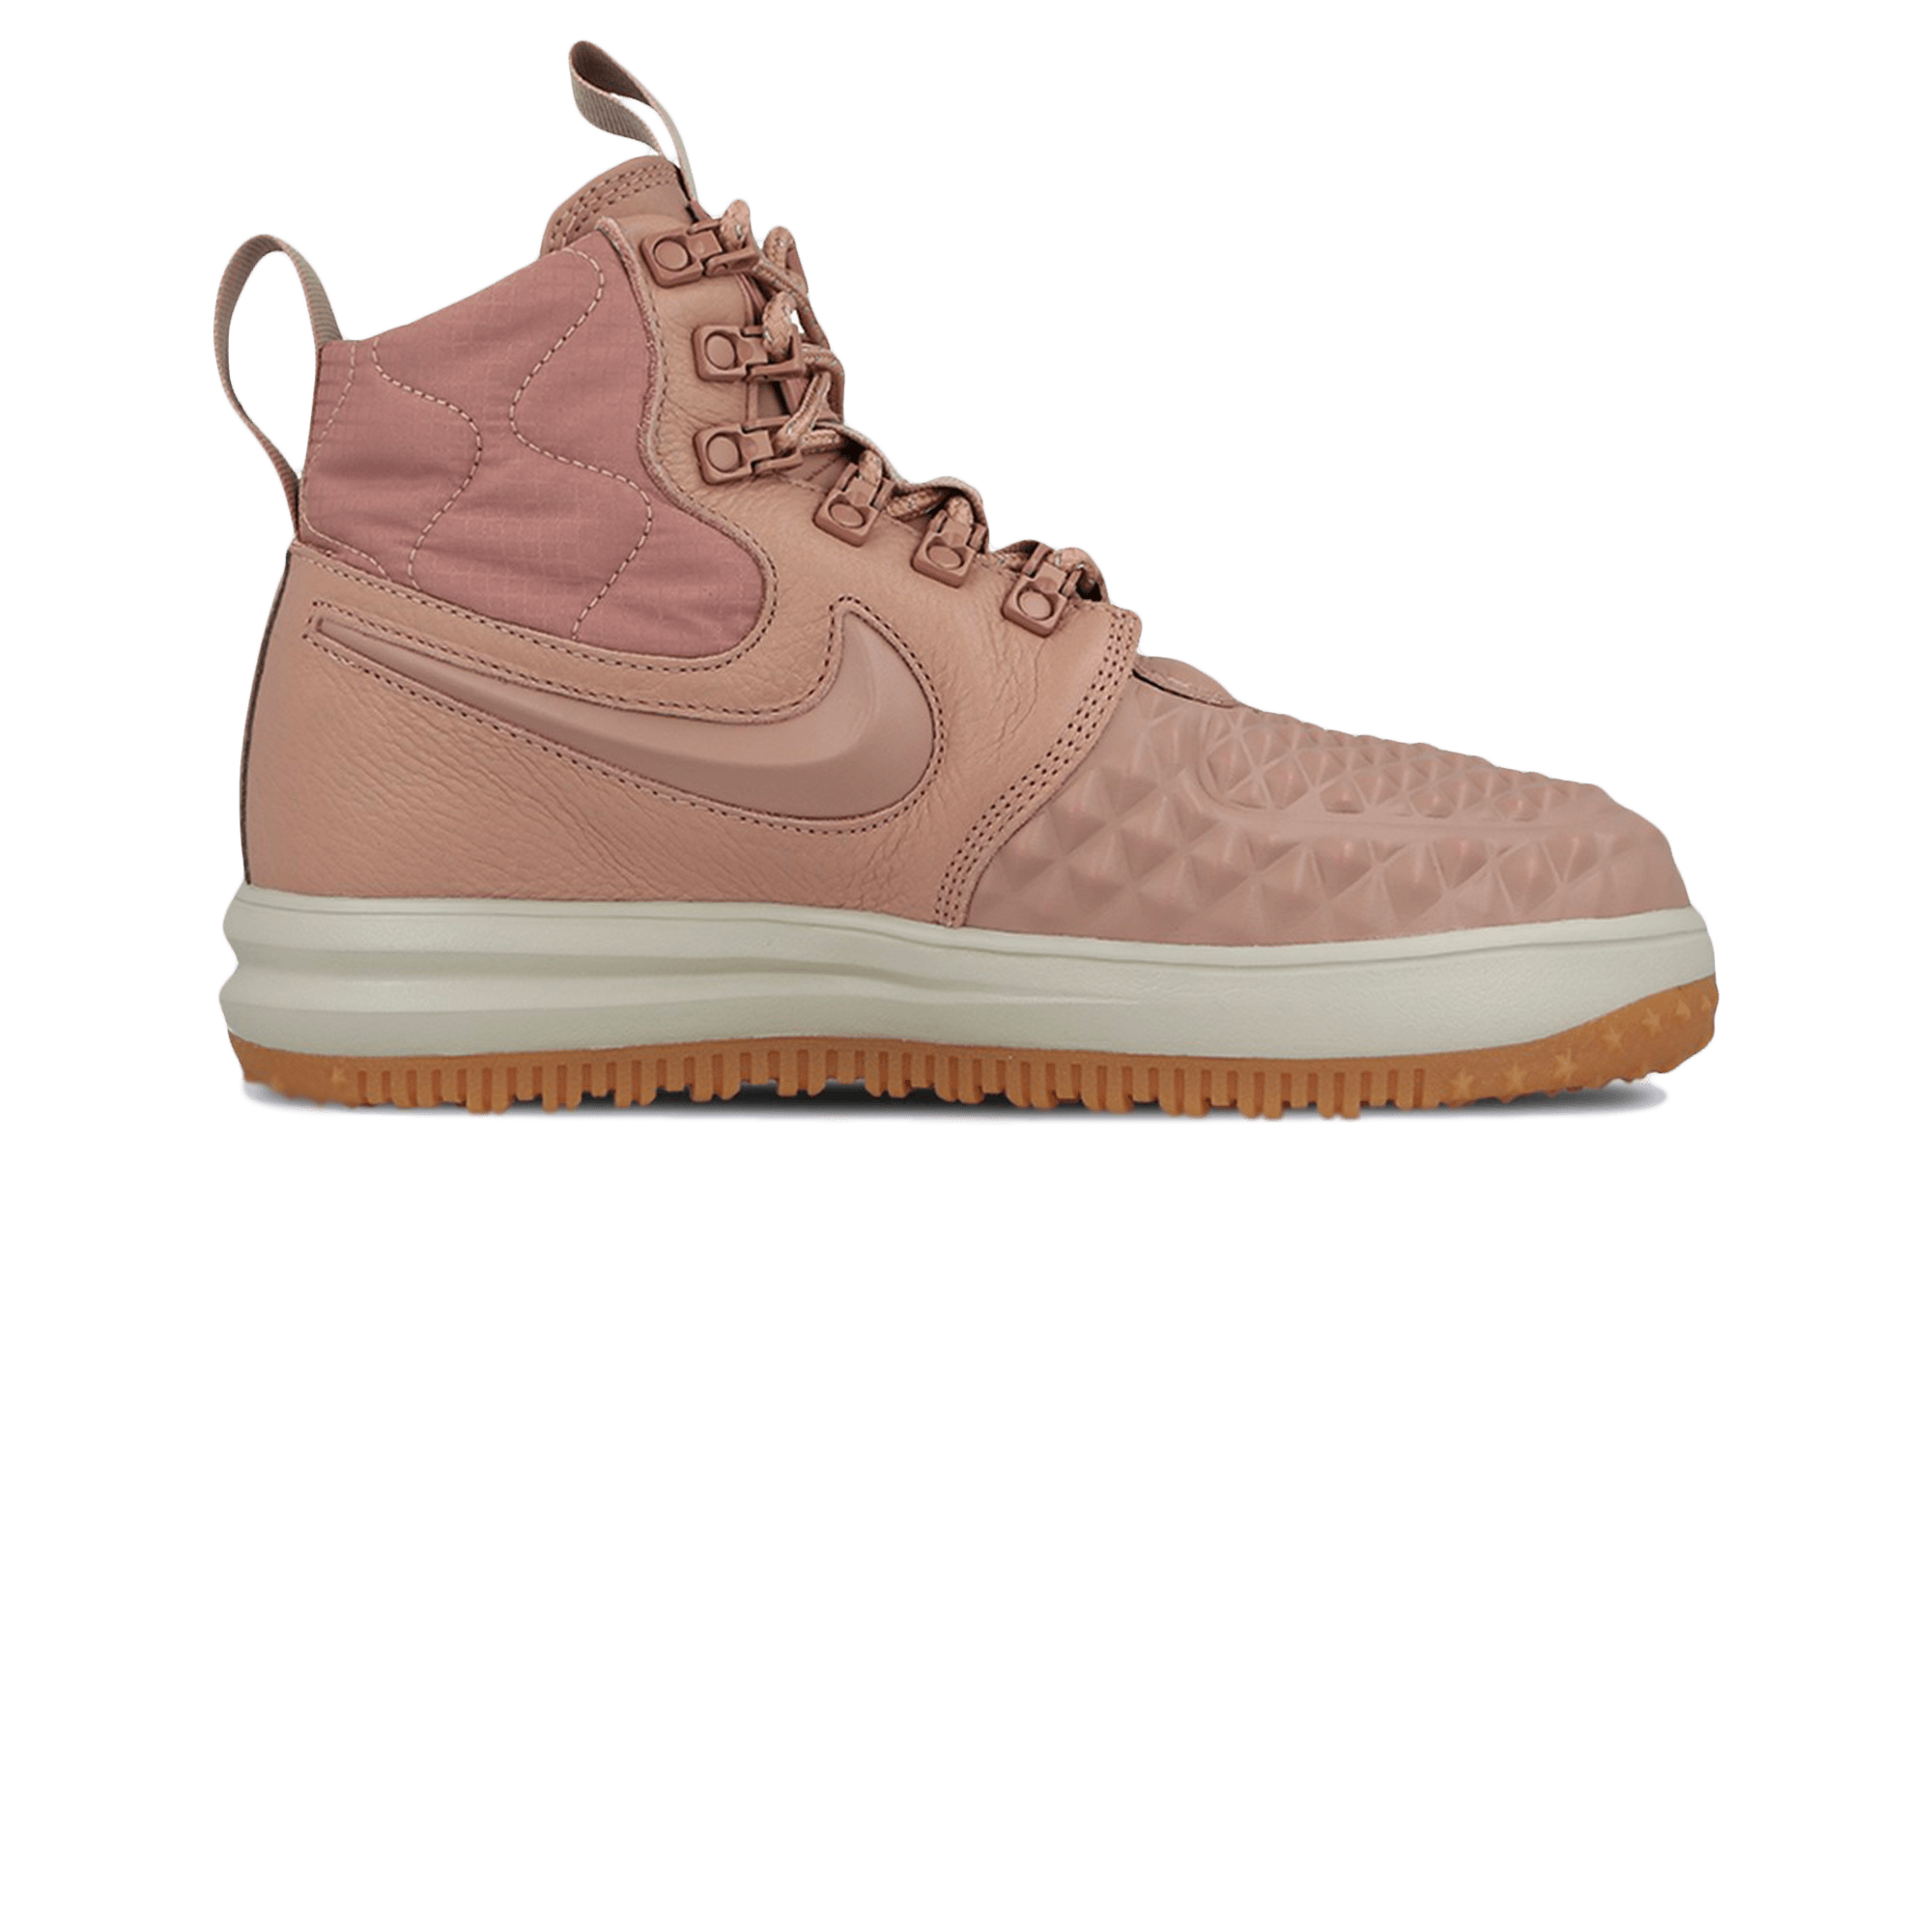 promo code aa306 063b3 Lunar Force 1 Duckboot particle pink